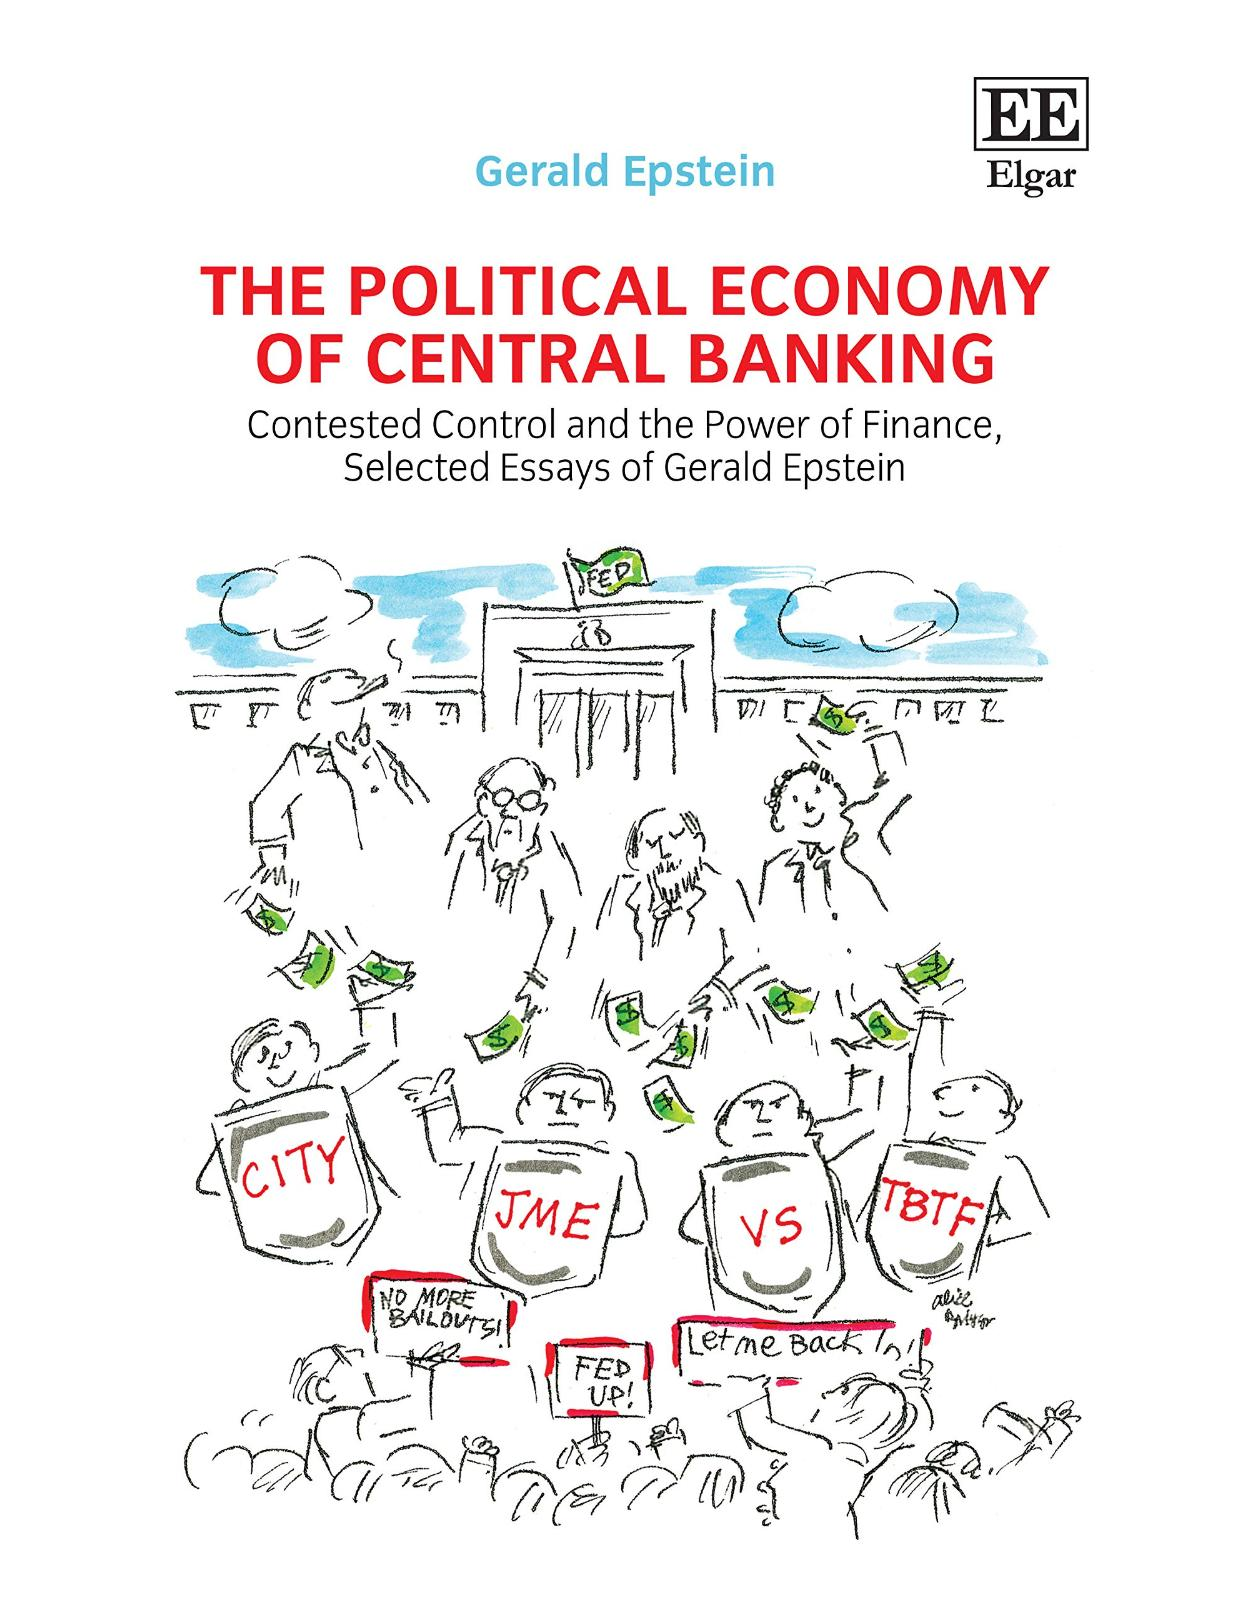 The Political Economy of Central Banking: Contested Control and the Power of Finance, Selected Essays of Gerald Epstein